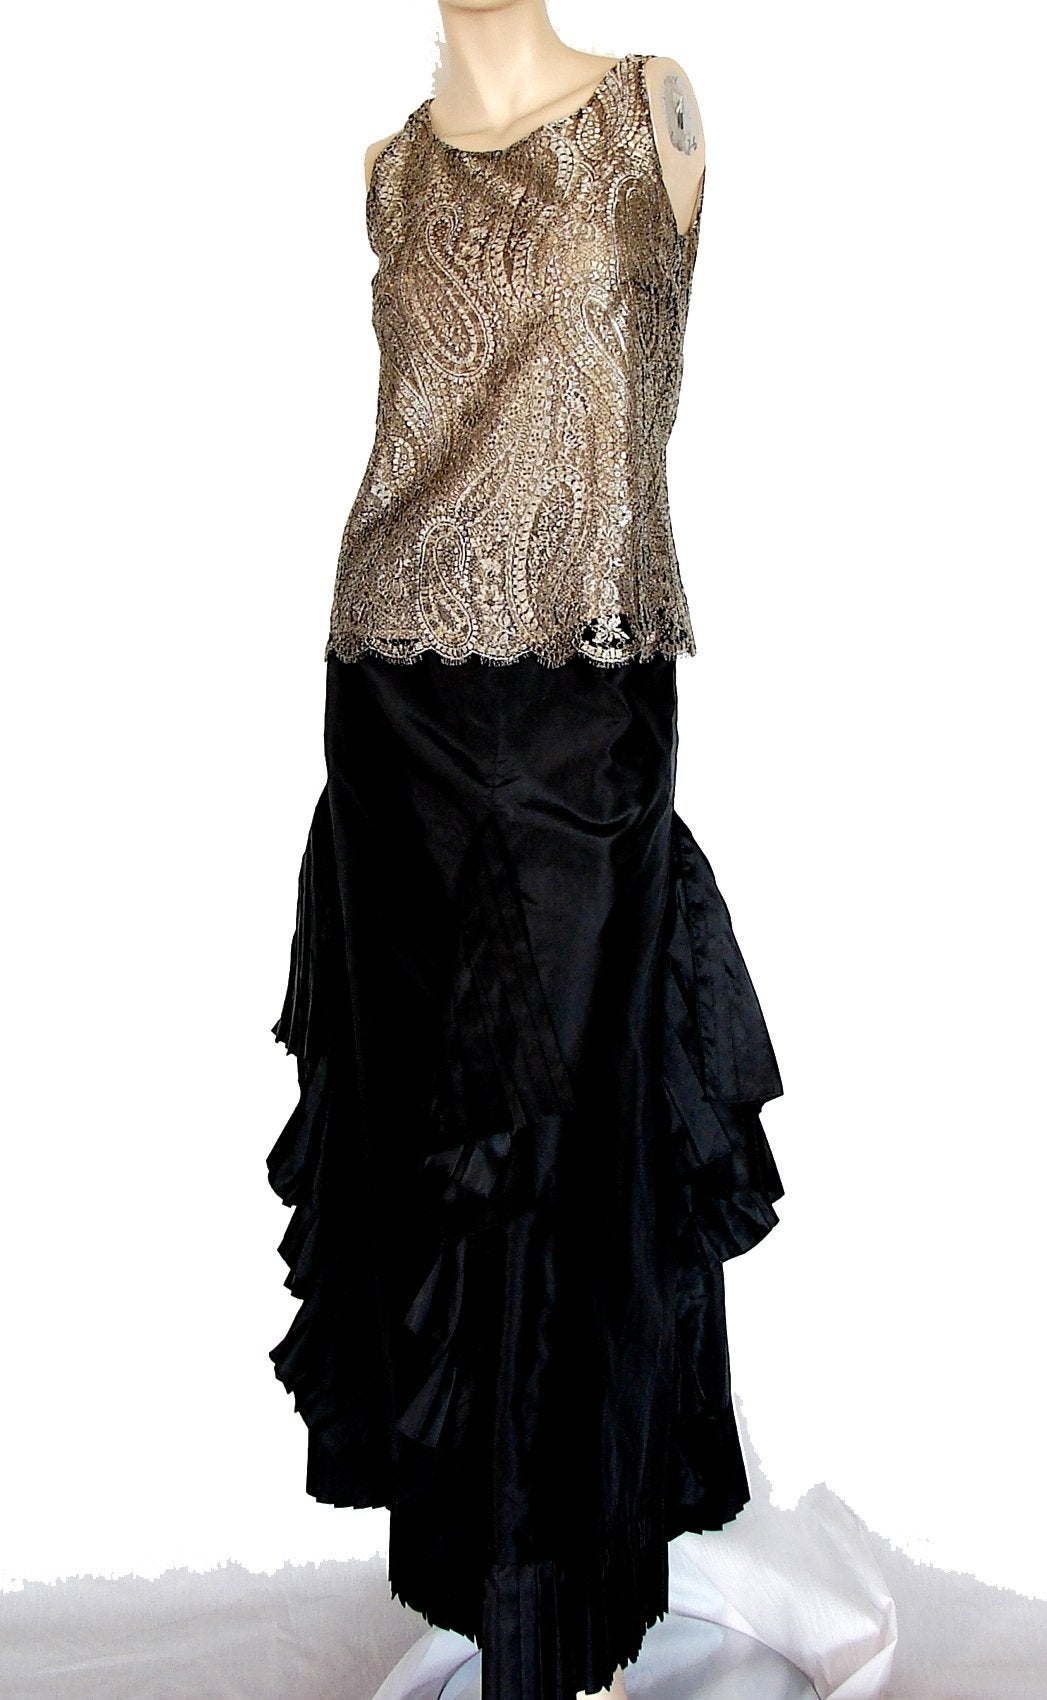 e80f5ed603a1a Chanel Silk Blouse Sleeveless Metallic Paisley Scalloped Lace Shell Top Sz  38 For Sale at 1stdibs